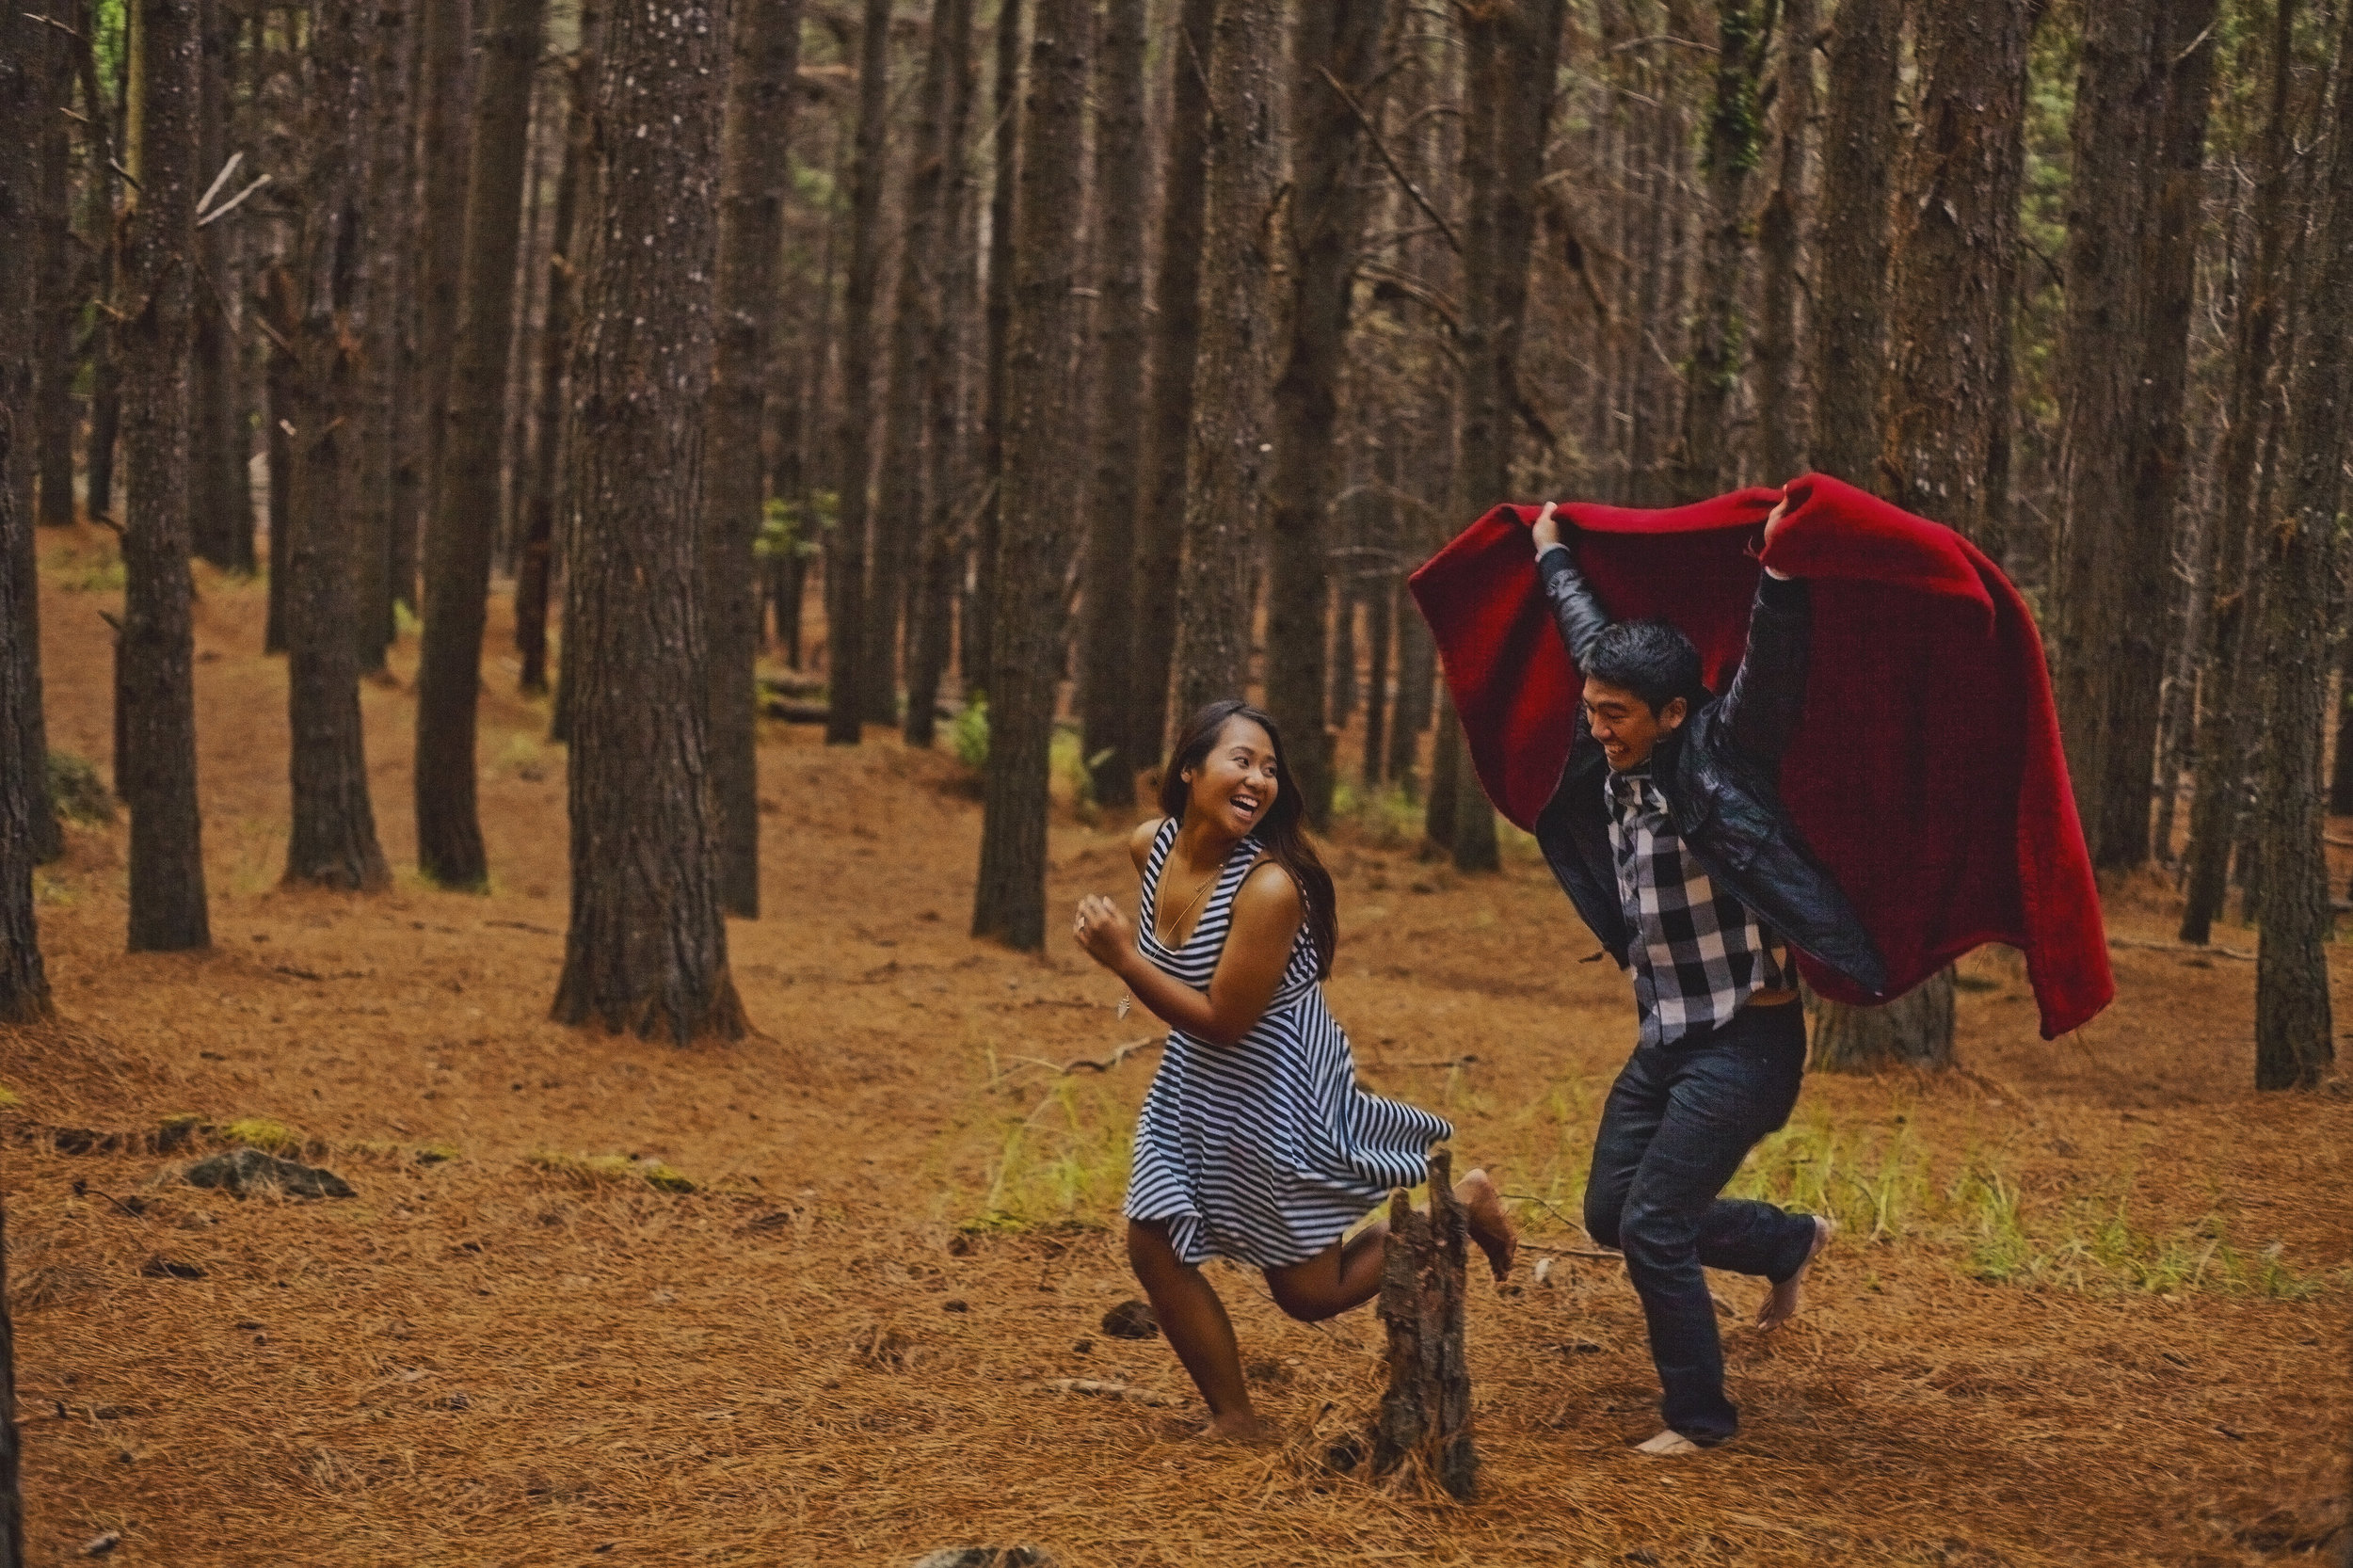 angie-diaz-photography-maui-upcountry-engagement-24.jpg